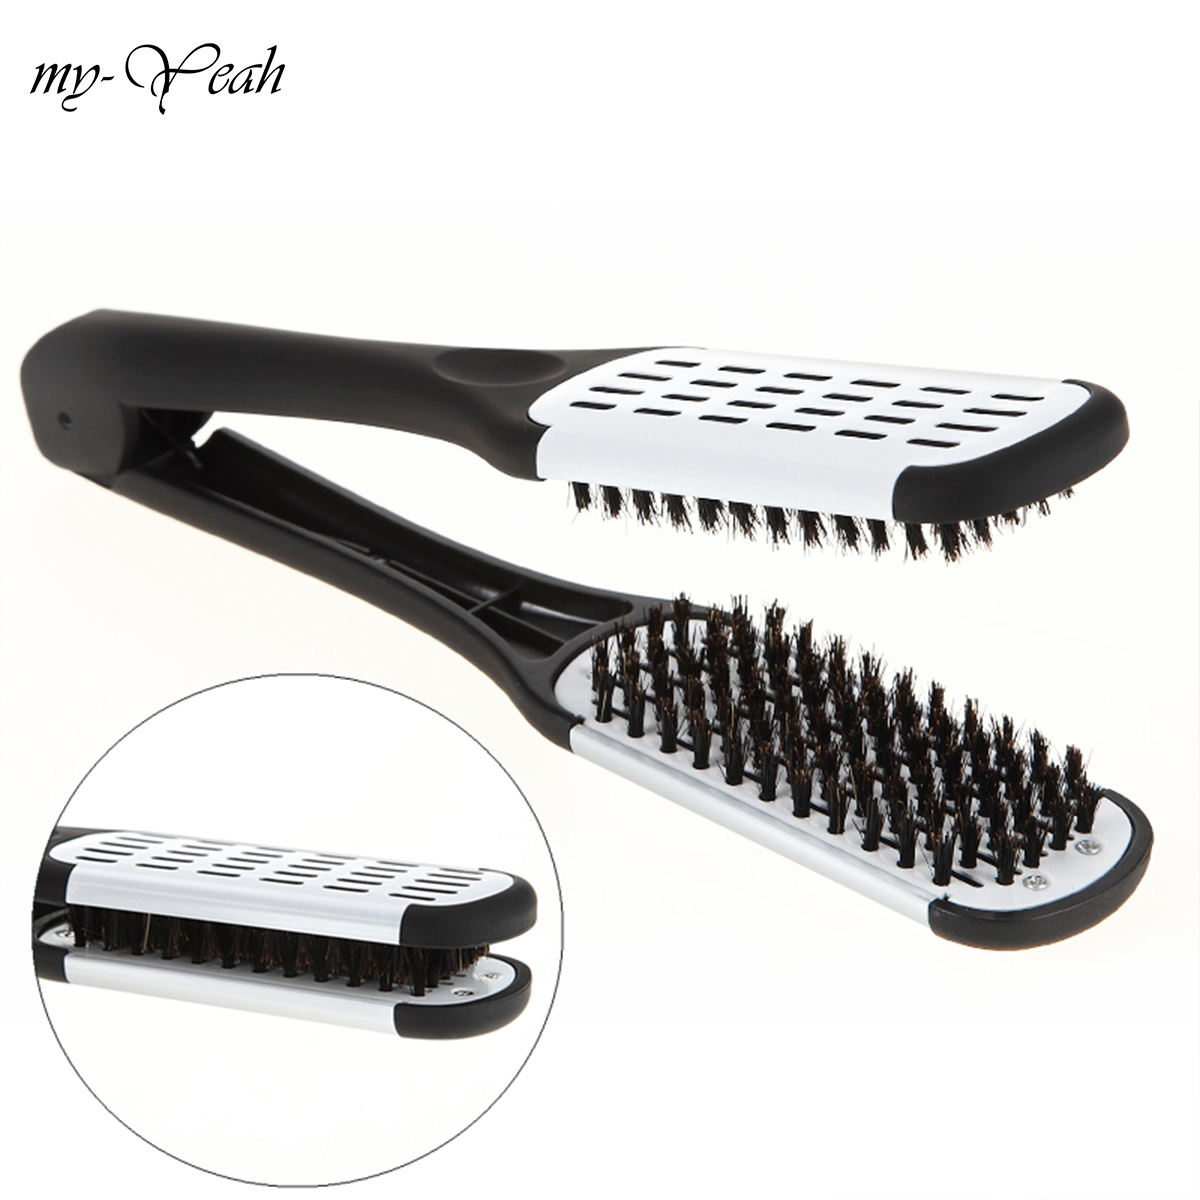 Pro Frisør Straightener Keramisk Hair Straightening Dobbeltbørster V Shape Comb Clamp Ikke Hurtig Styling Tools